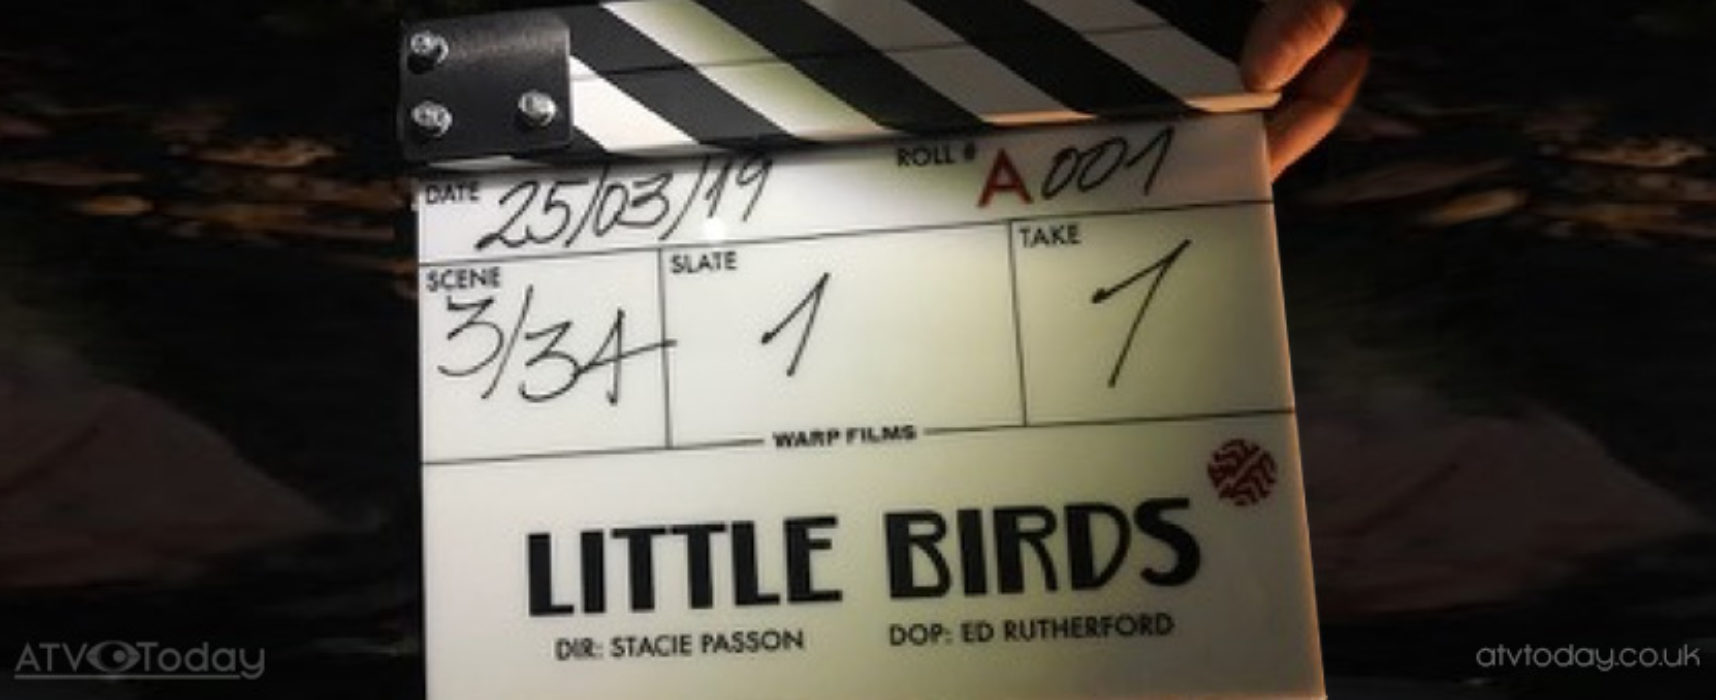 Sky Atlantic reveal more details on Little Birds drama